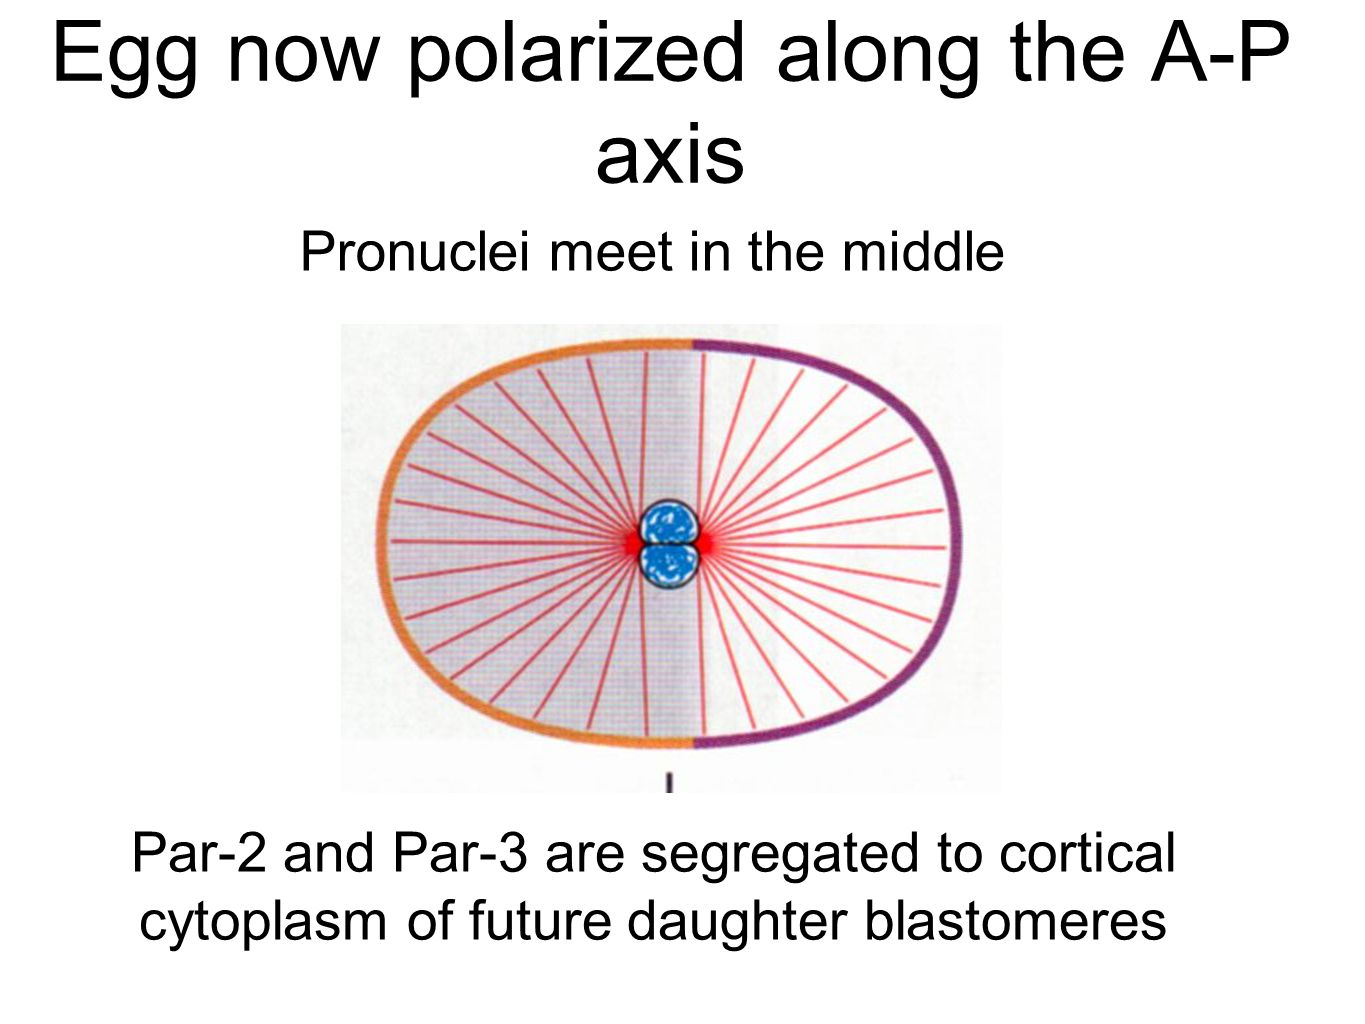 Egg now polarized along the A-P axis